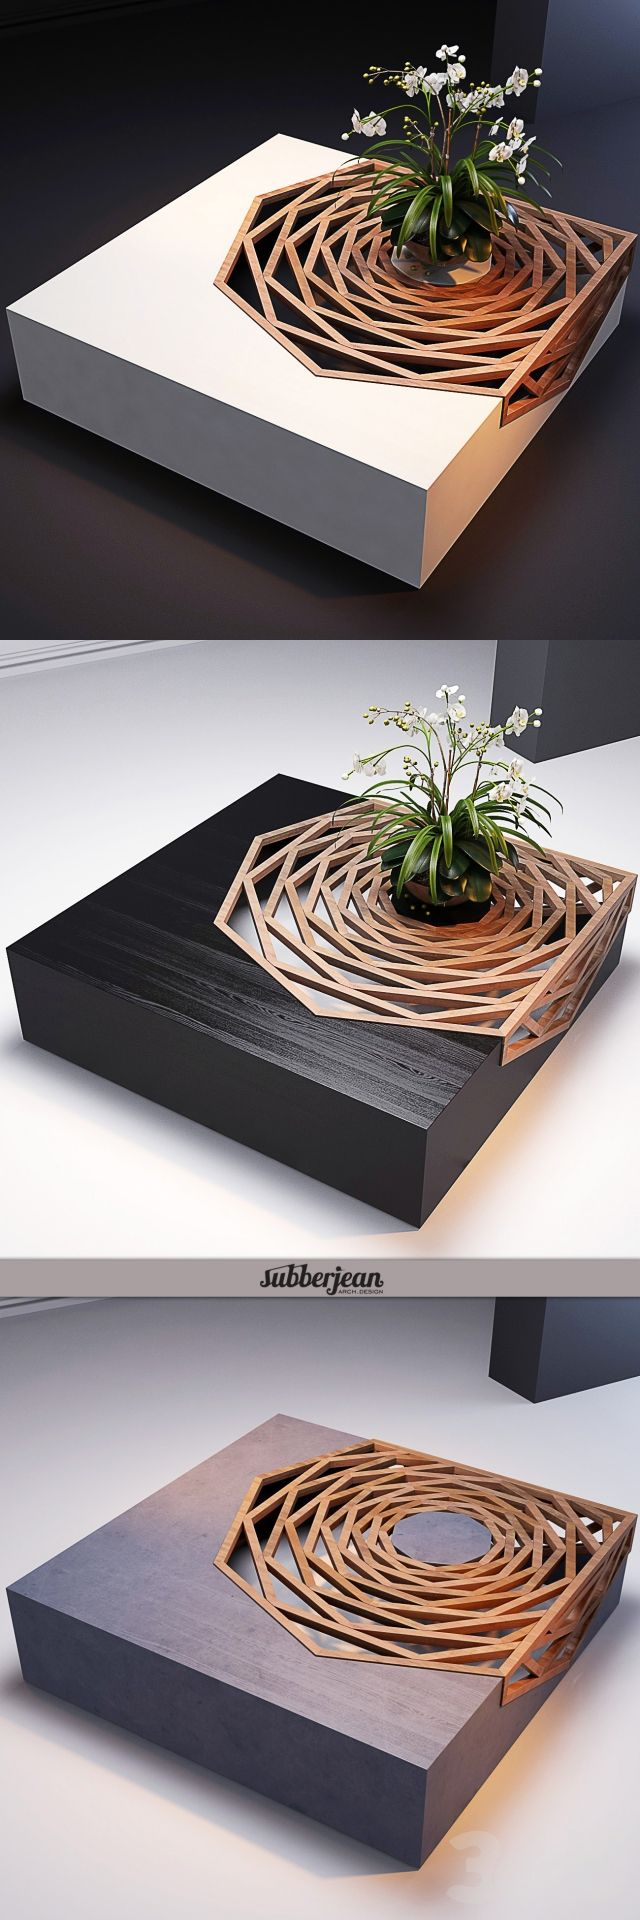 Gorgeous Design Wood Coffee Table | Simple DIYs